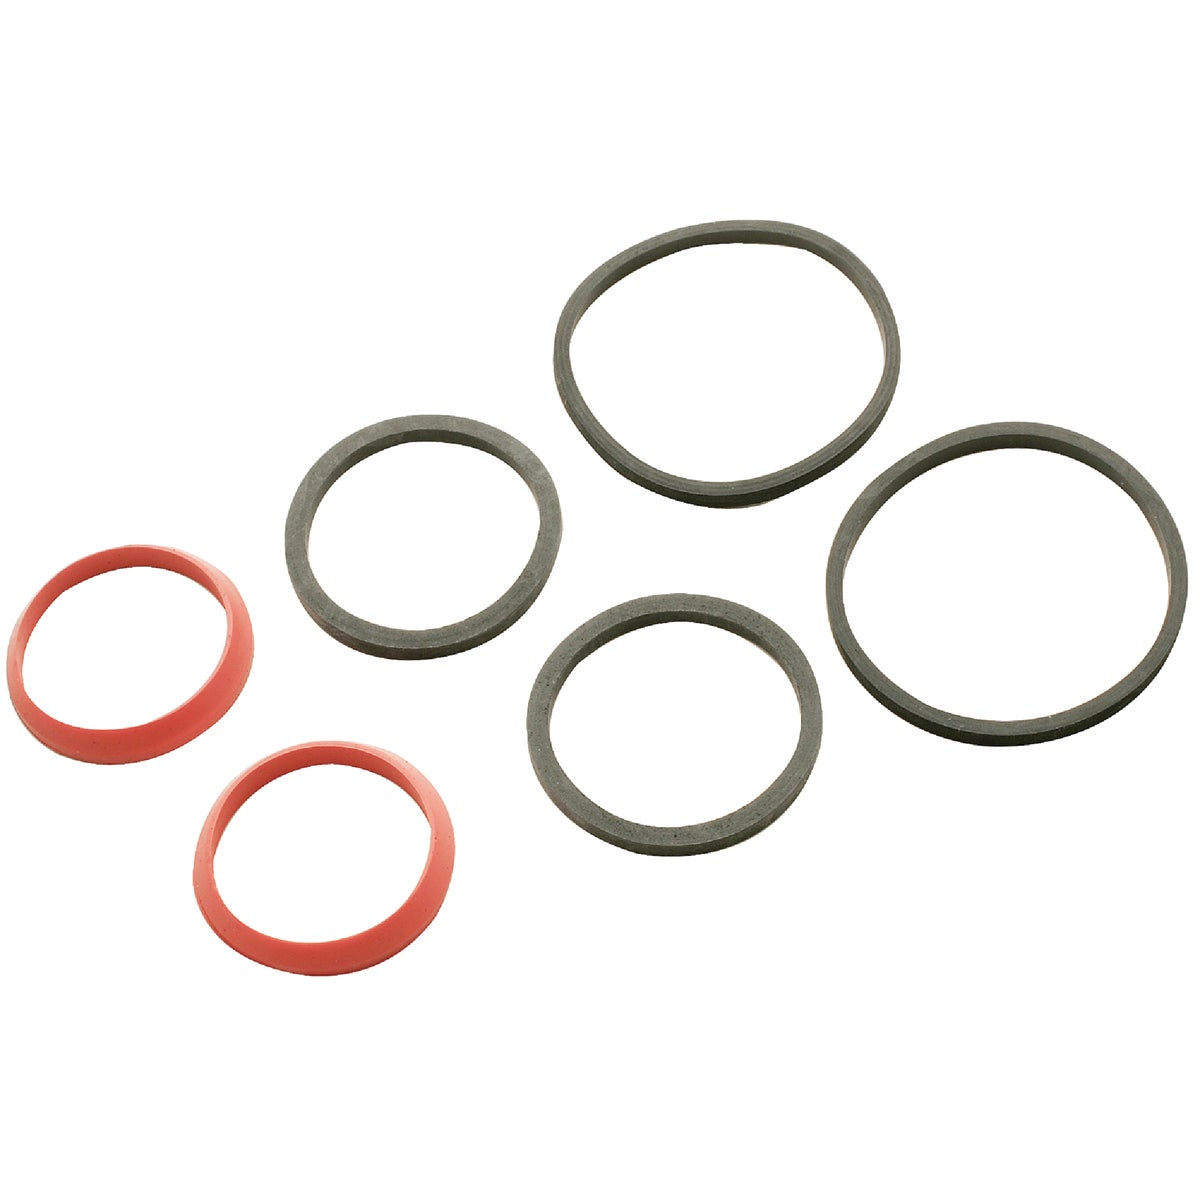 6PK RBR S/J WASHERS